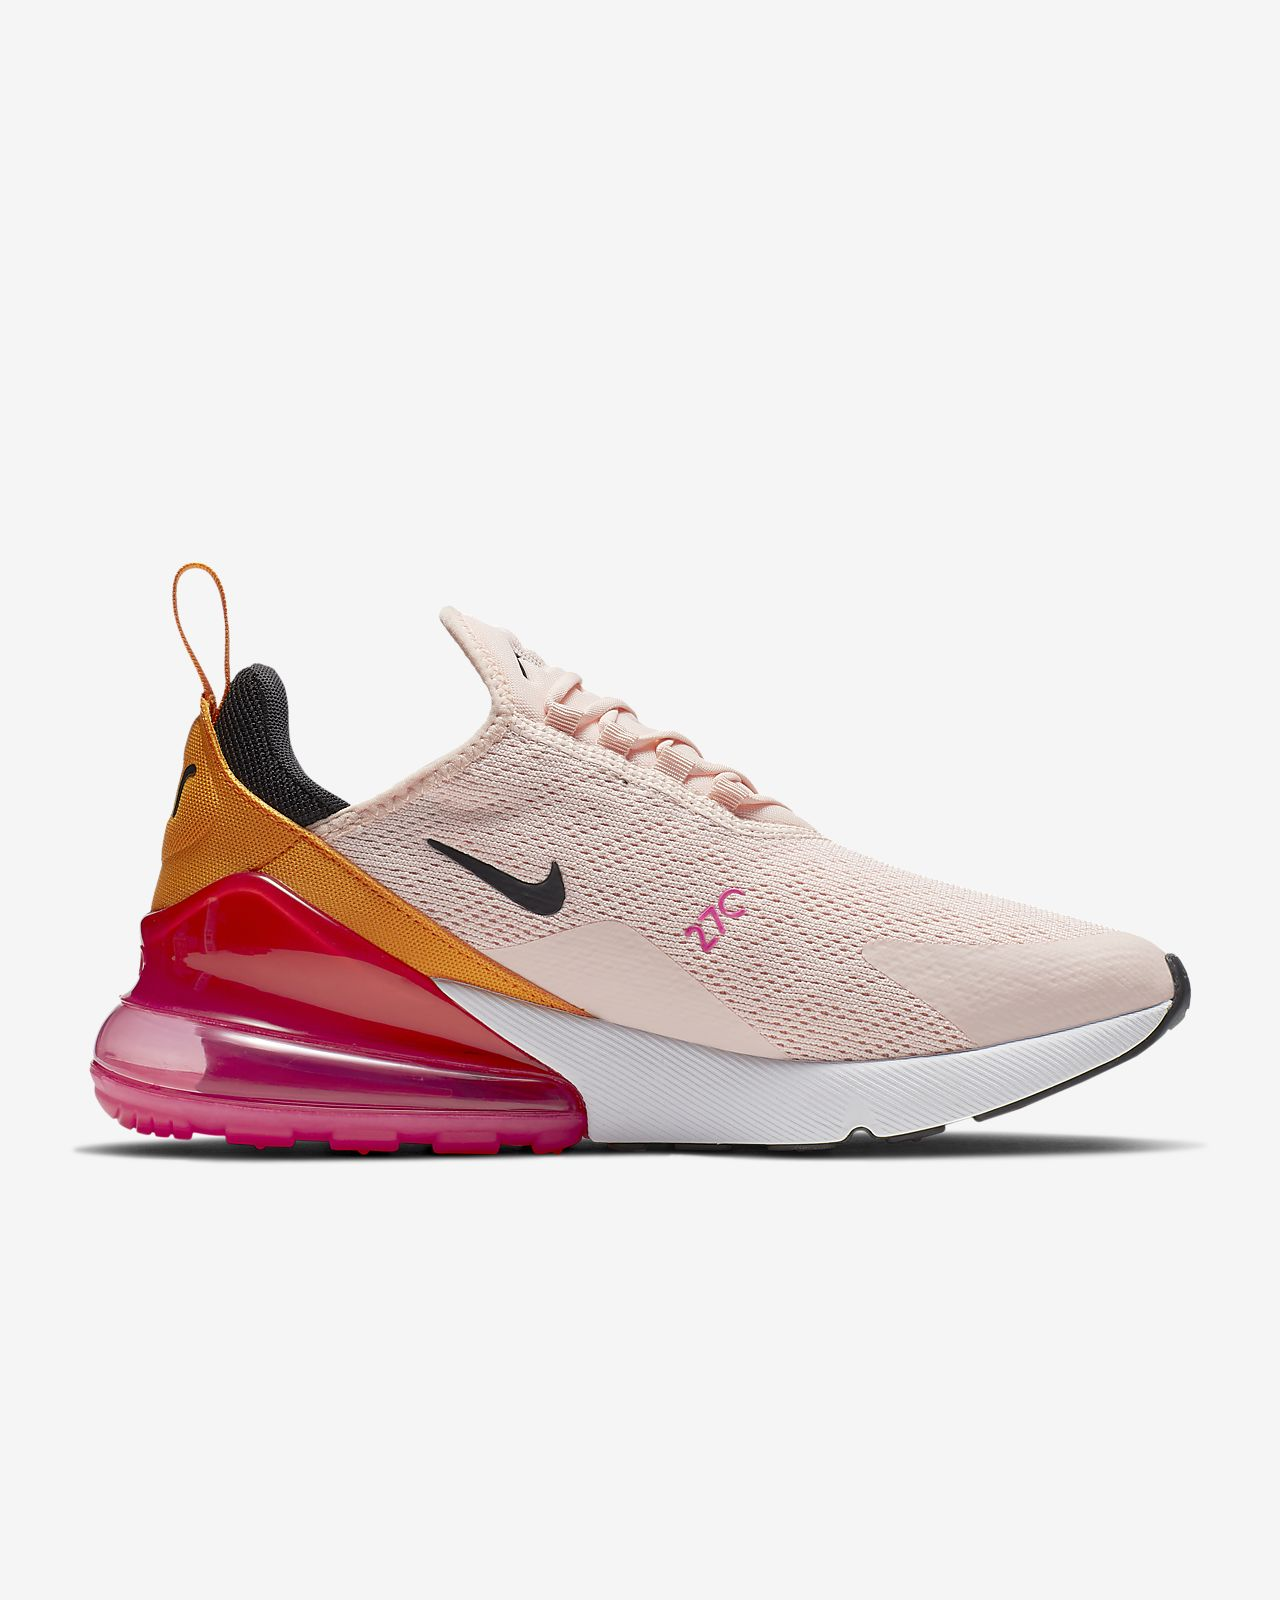 separation shoes b624e 998f5 ... Nike Air Max 270 Women s Shoe